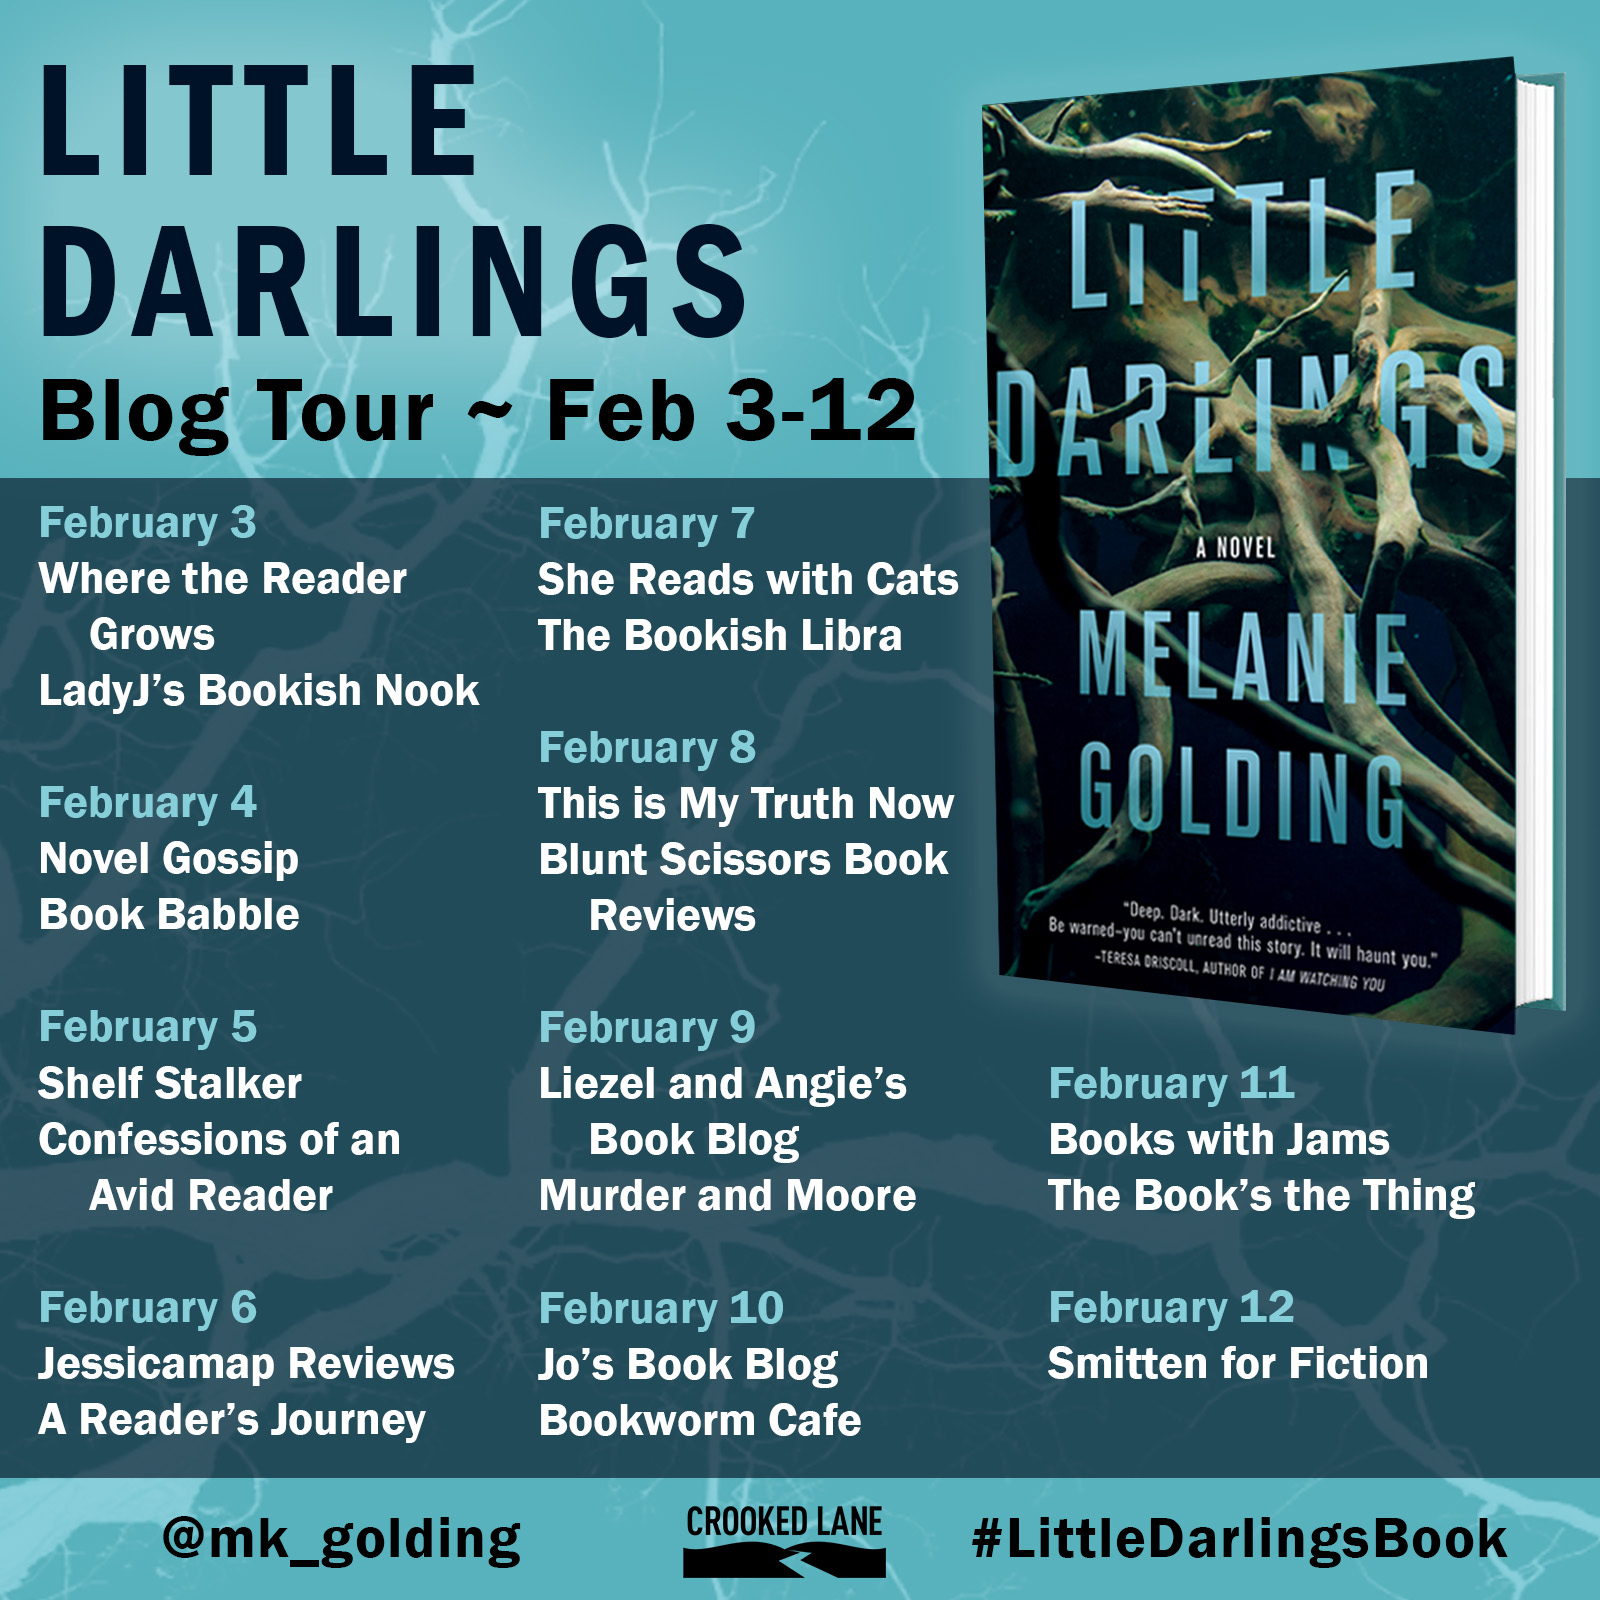 Little-Darlings-Blog-Tour